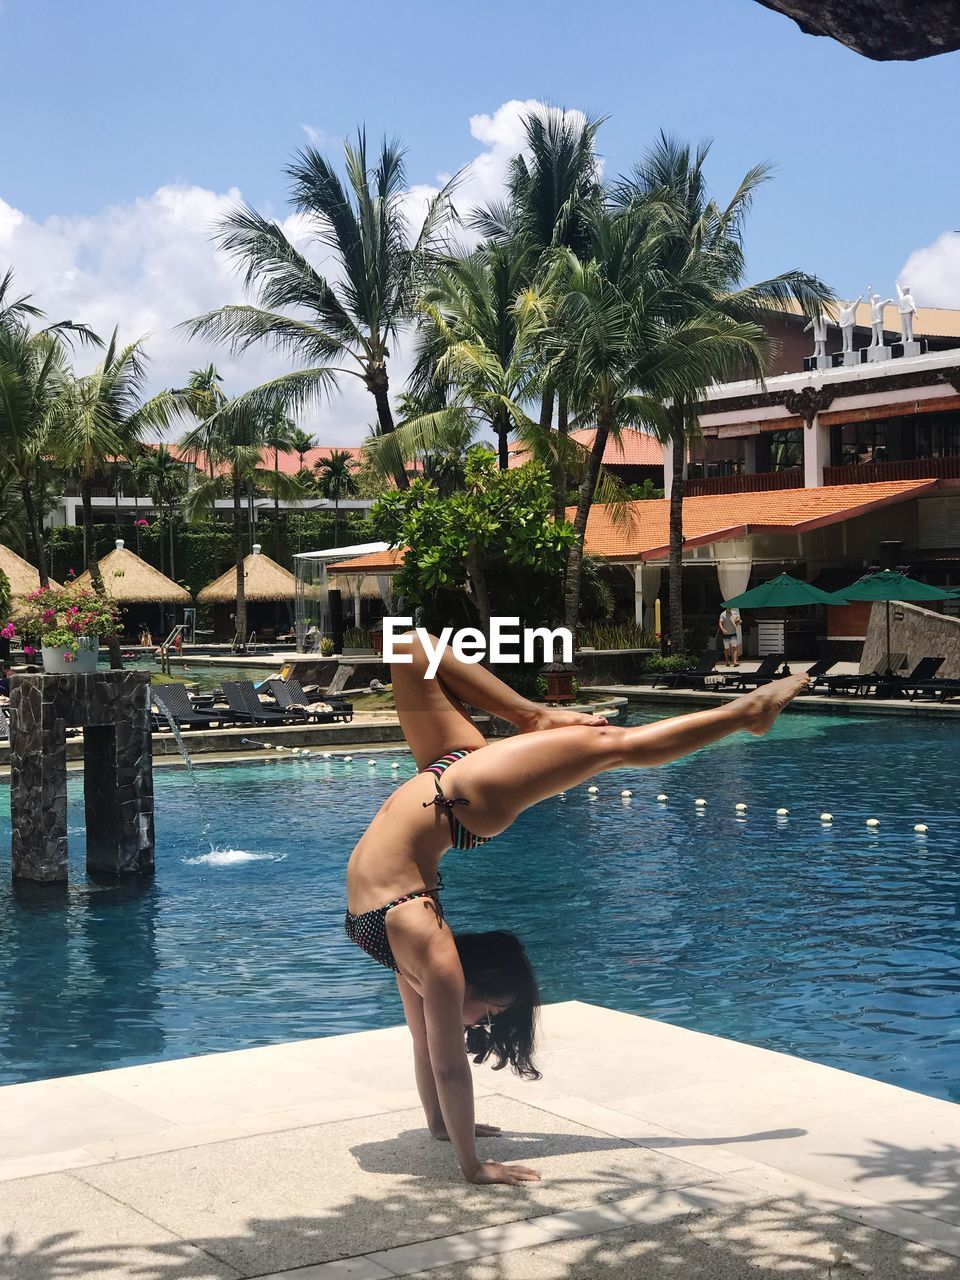 water, tree, swimming pool, palm tree, tropical climate, pool, real people, nature, leisure activity, plant, full length, shirtless, people, lifestyles, young adult, swimwear, sunlight, sky, outdoors